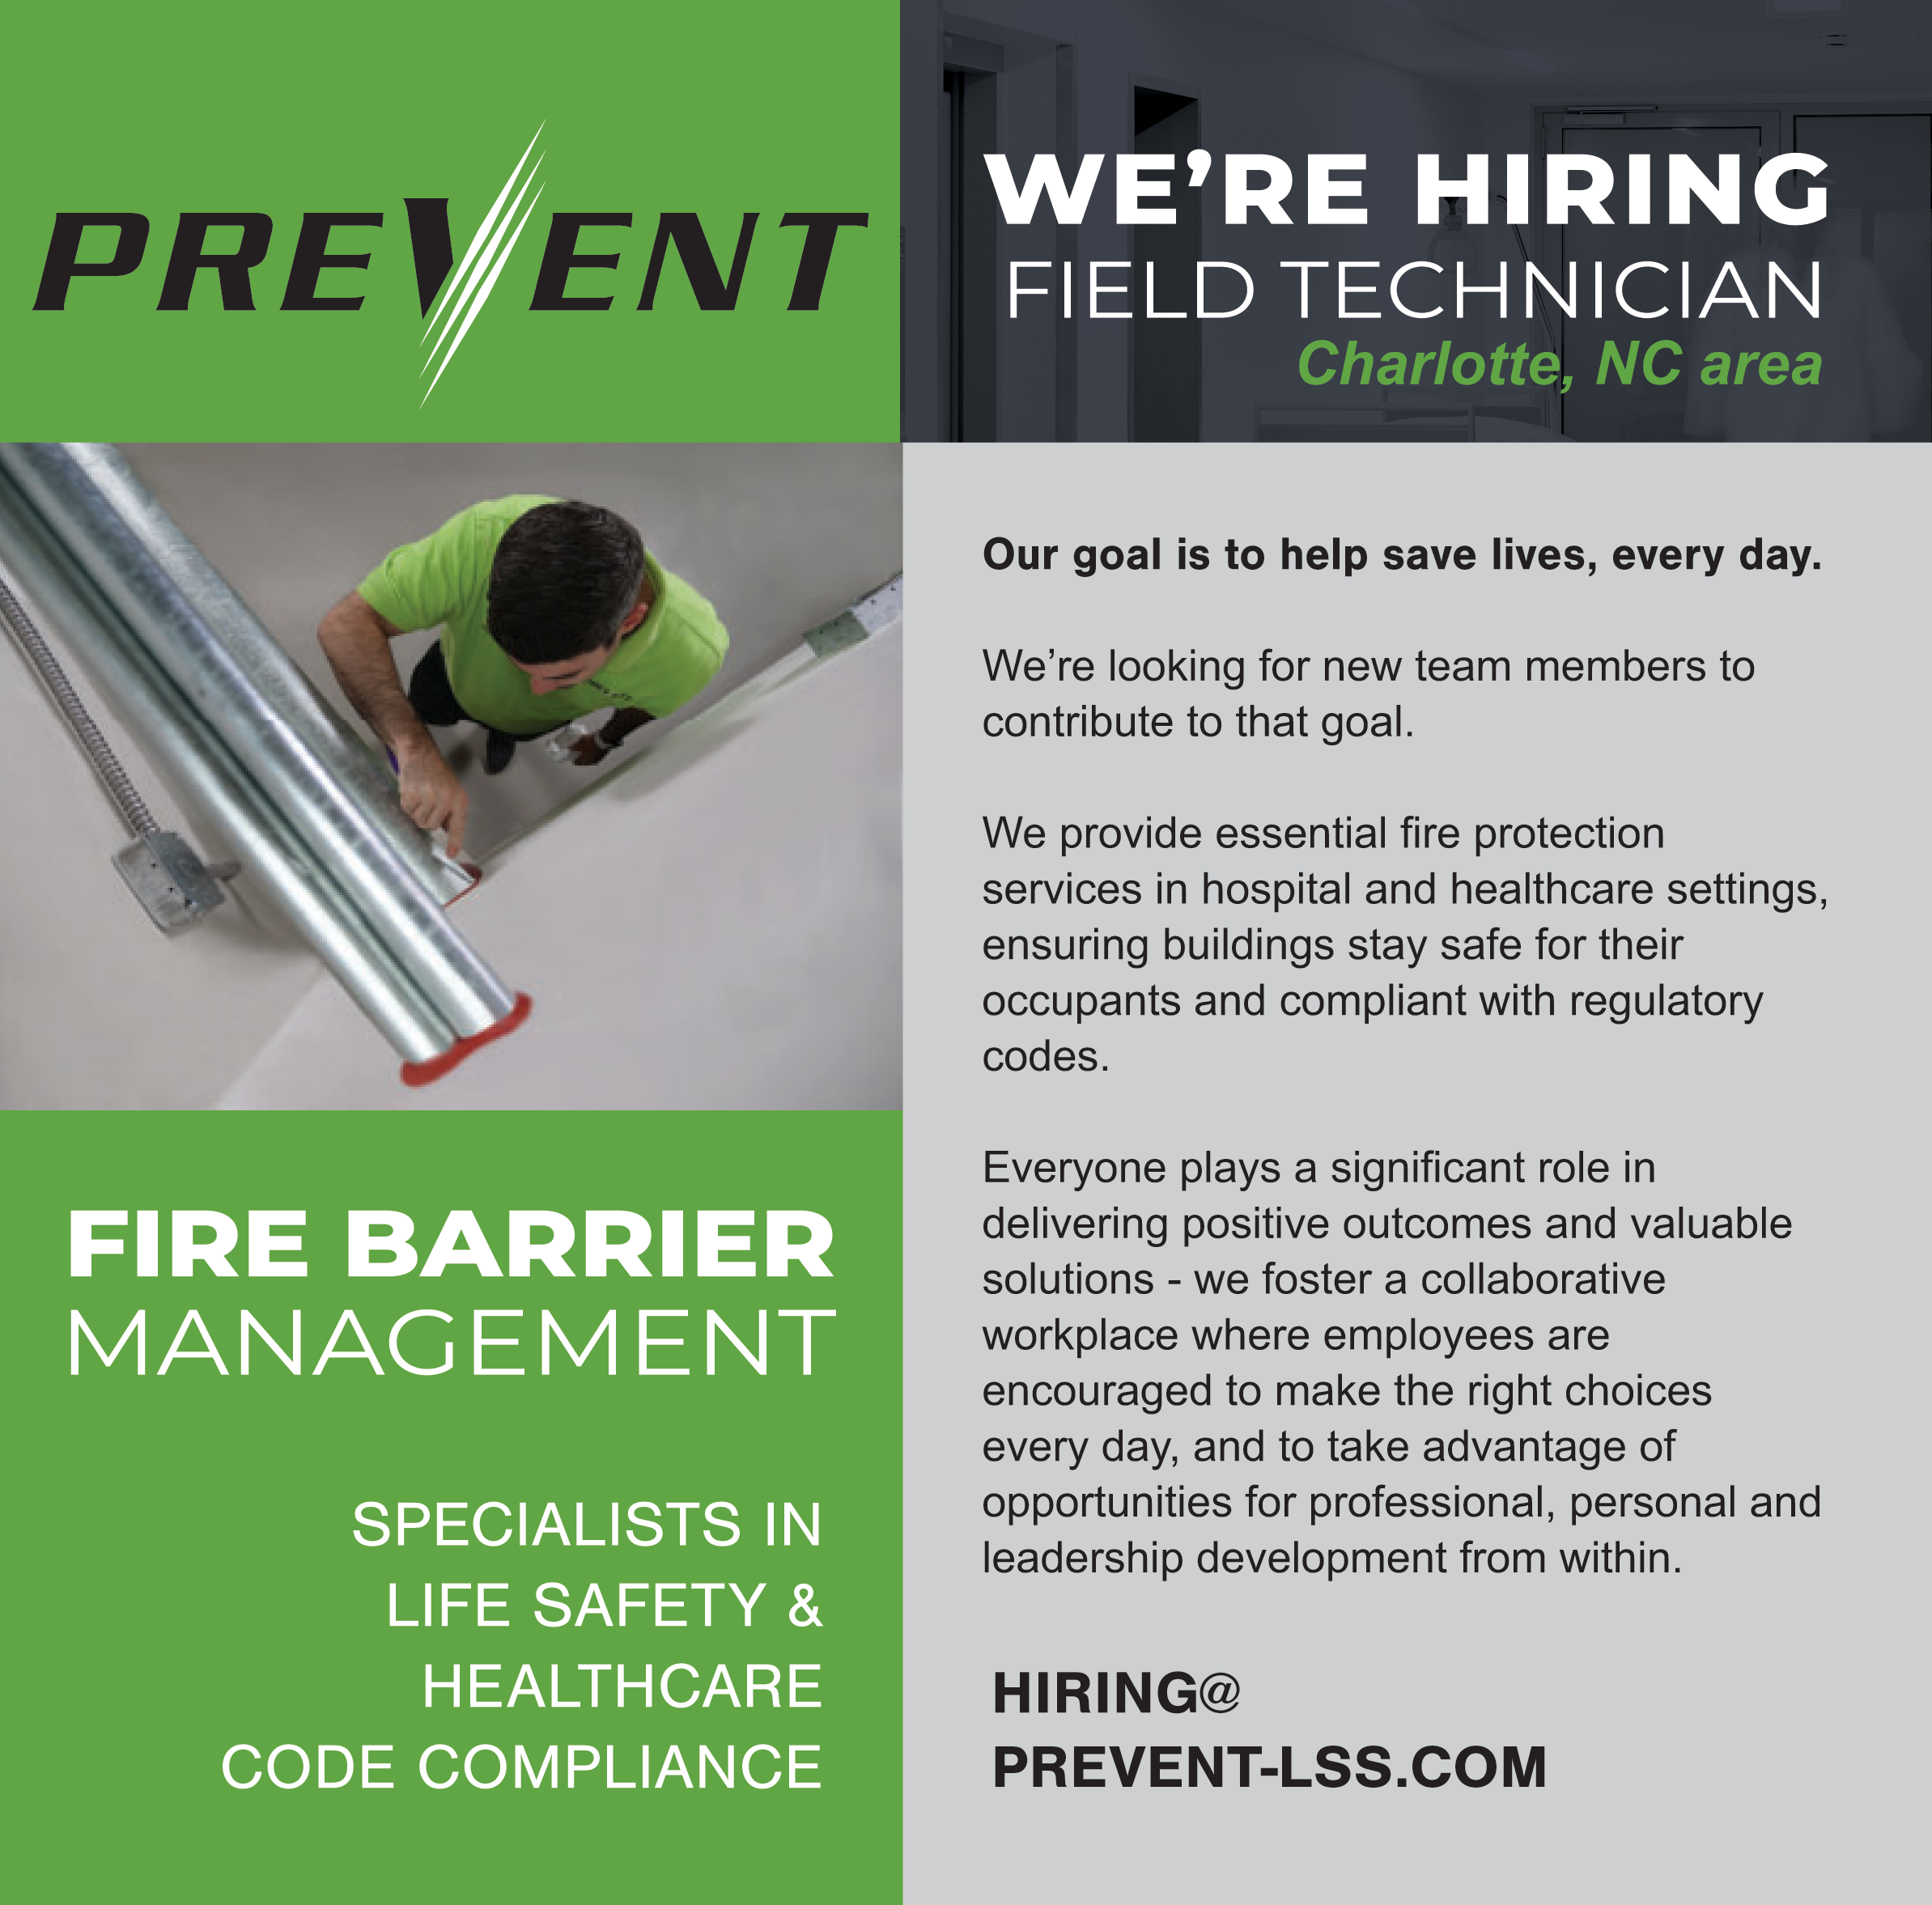 PREVENT is hiring - Field Techs in Charlotte NC